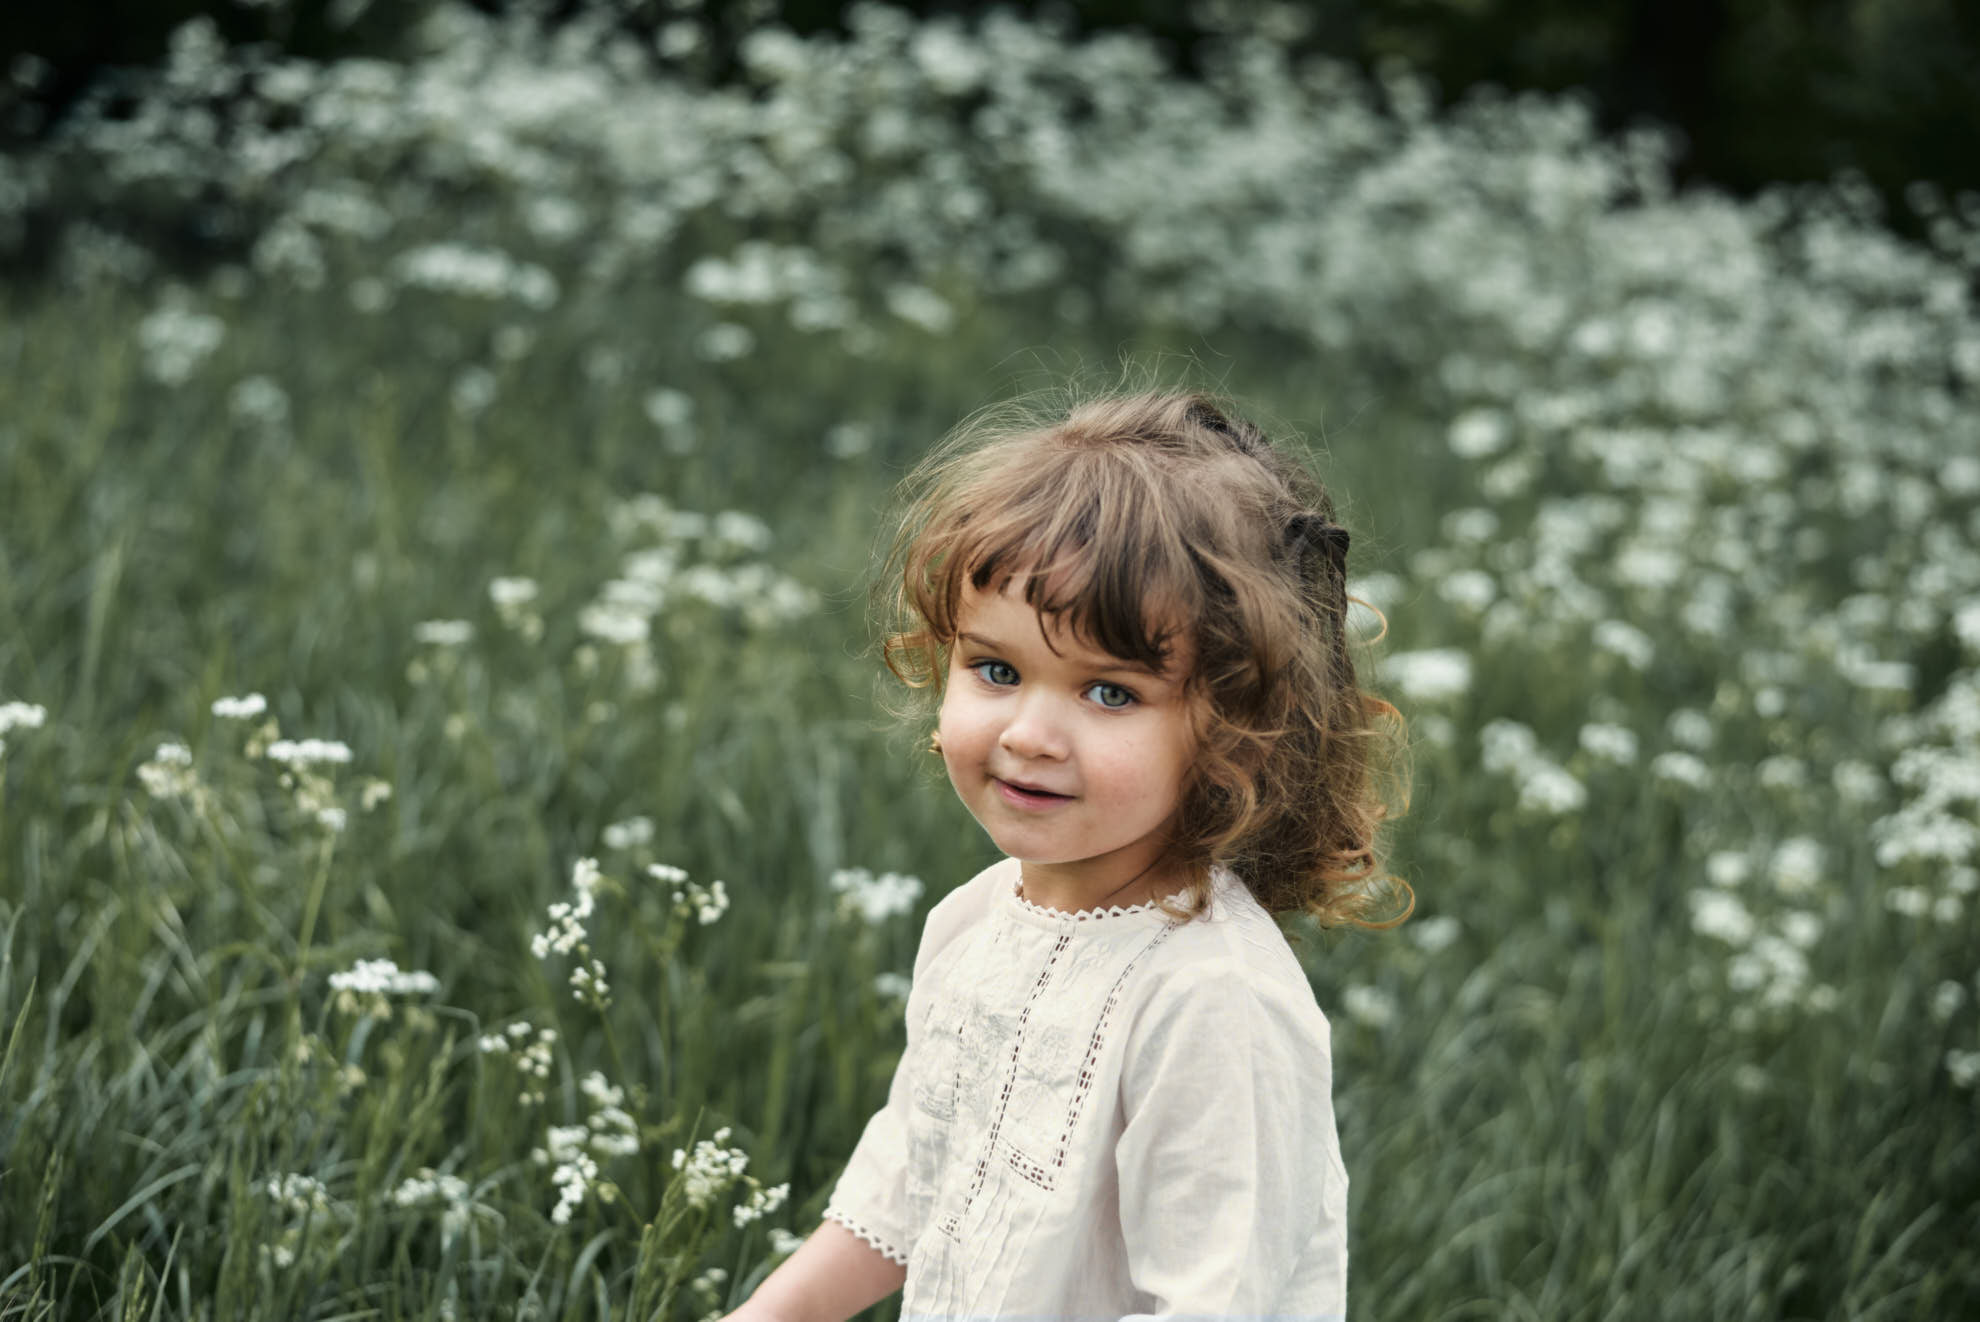 Children Photography in Wanstead